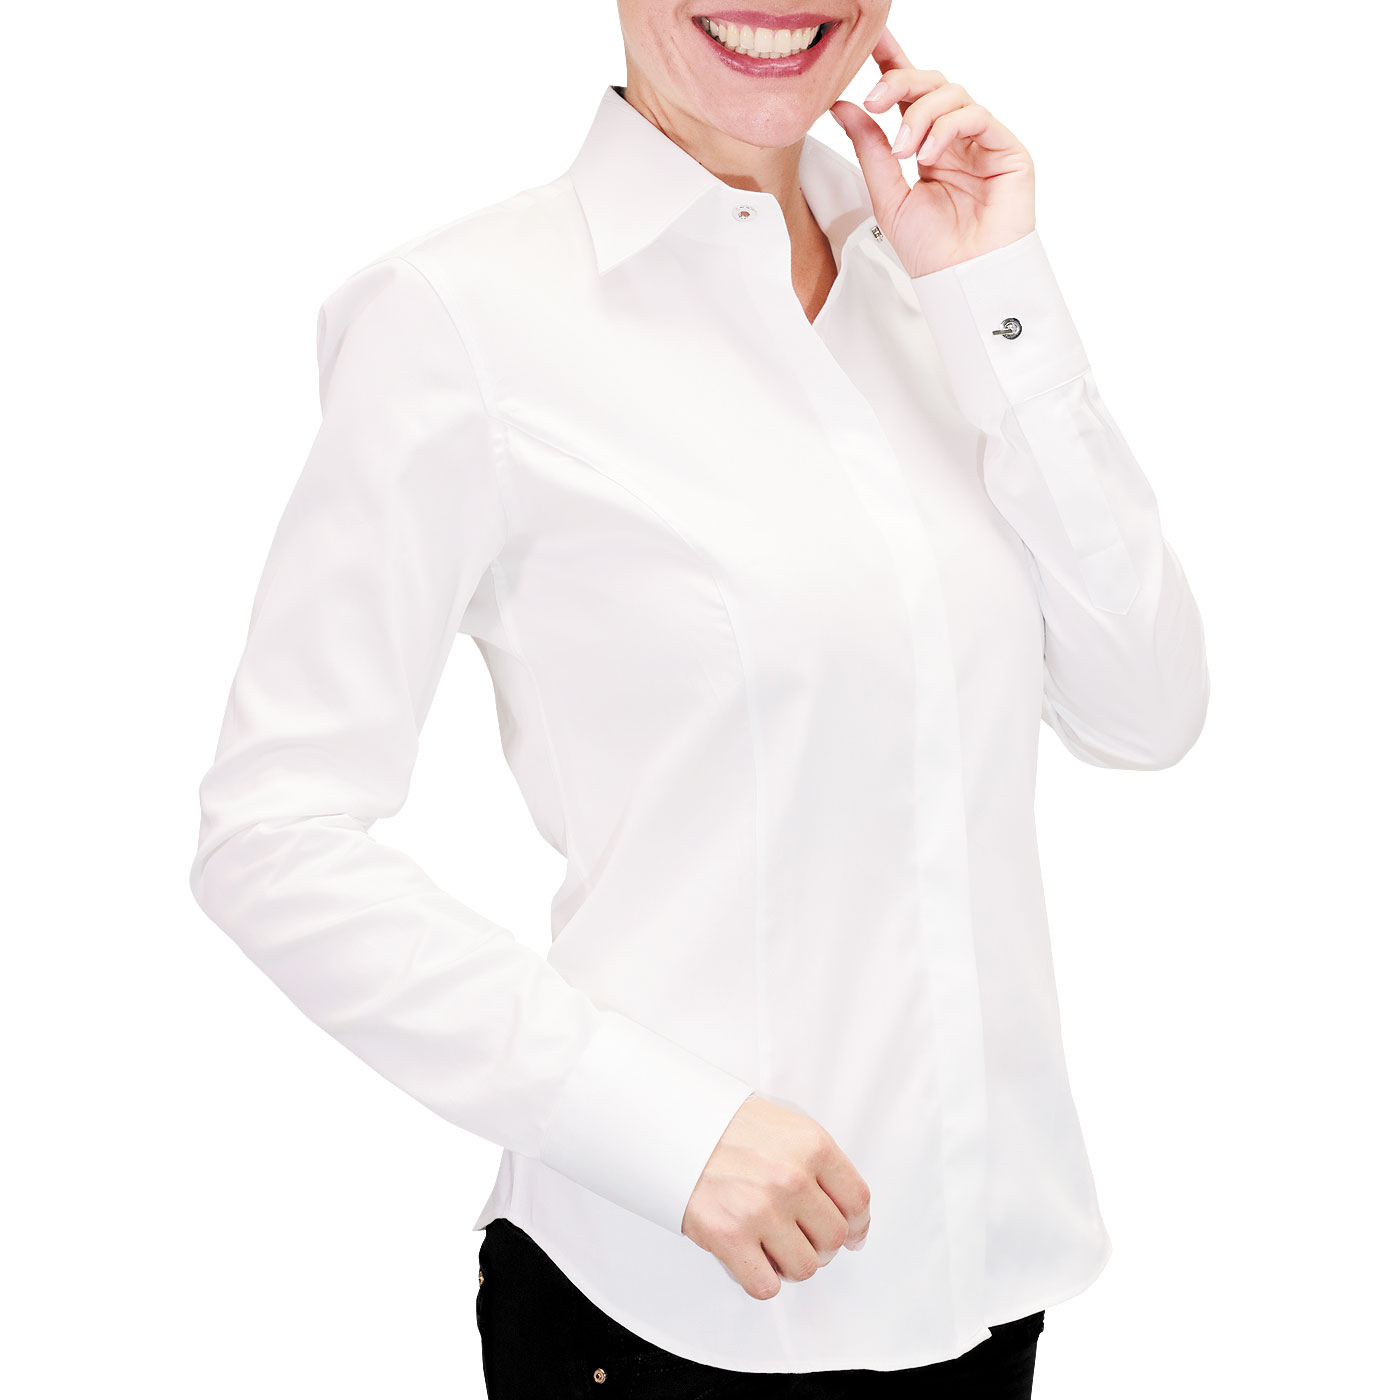 White Shirt for Woman : a must have